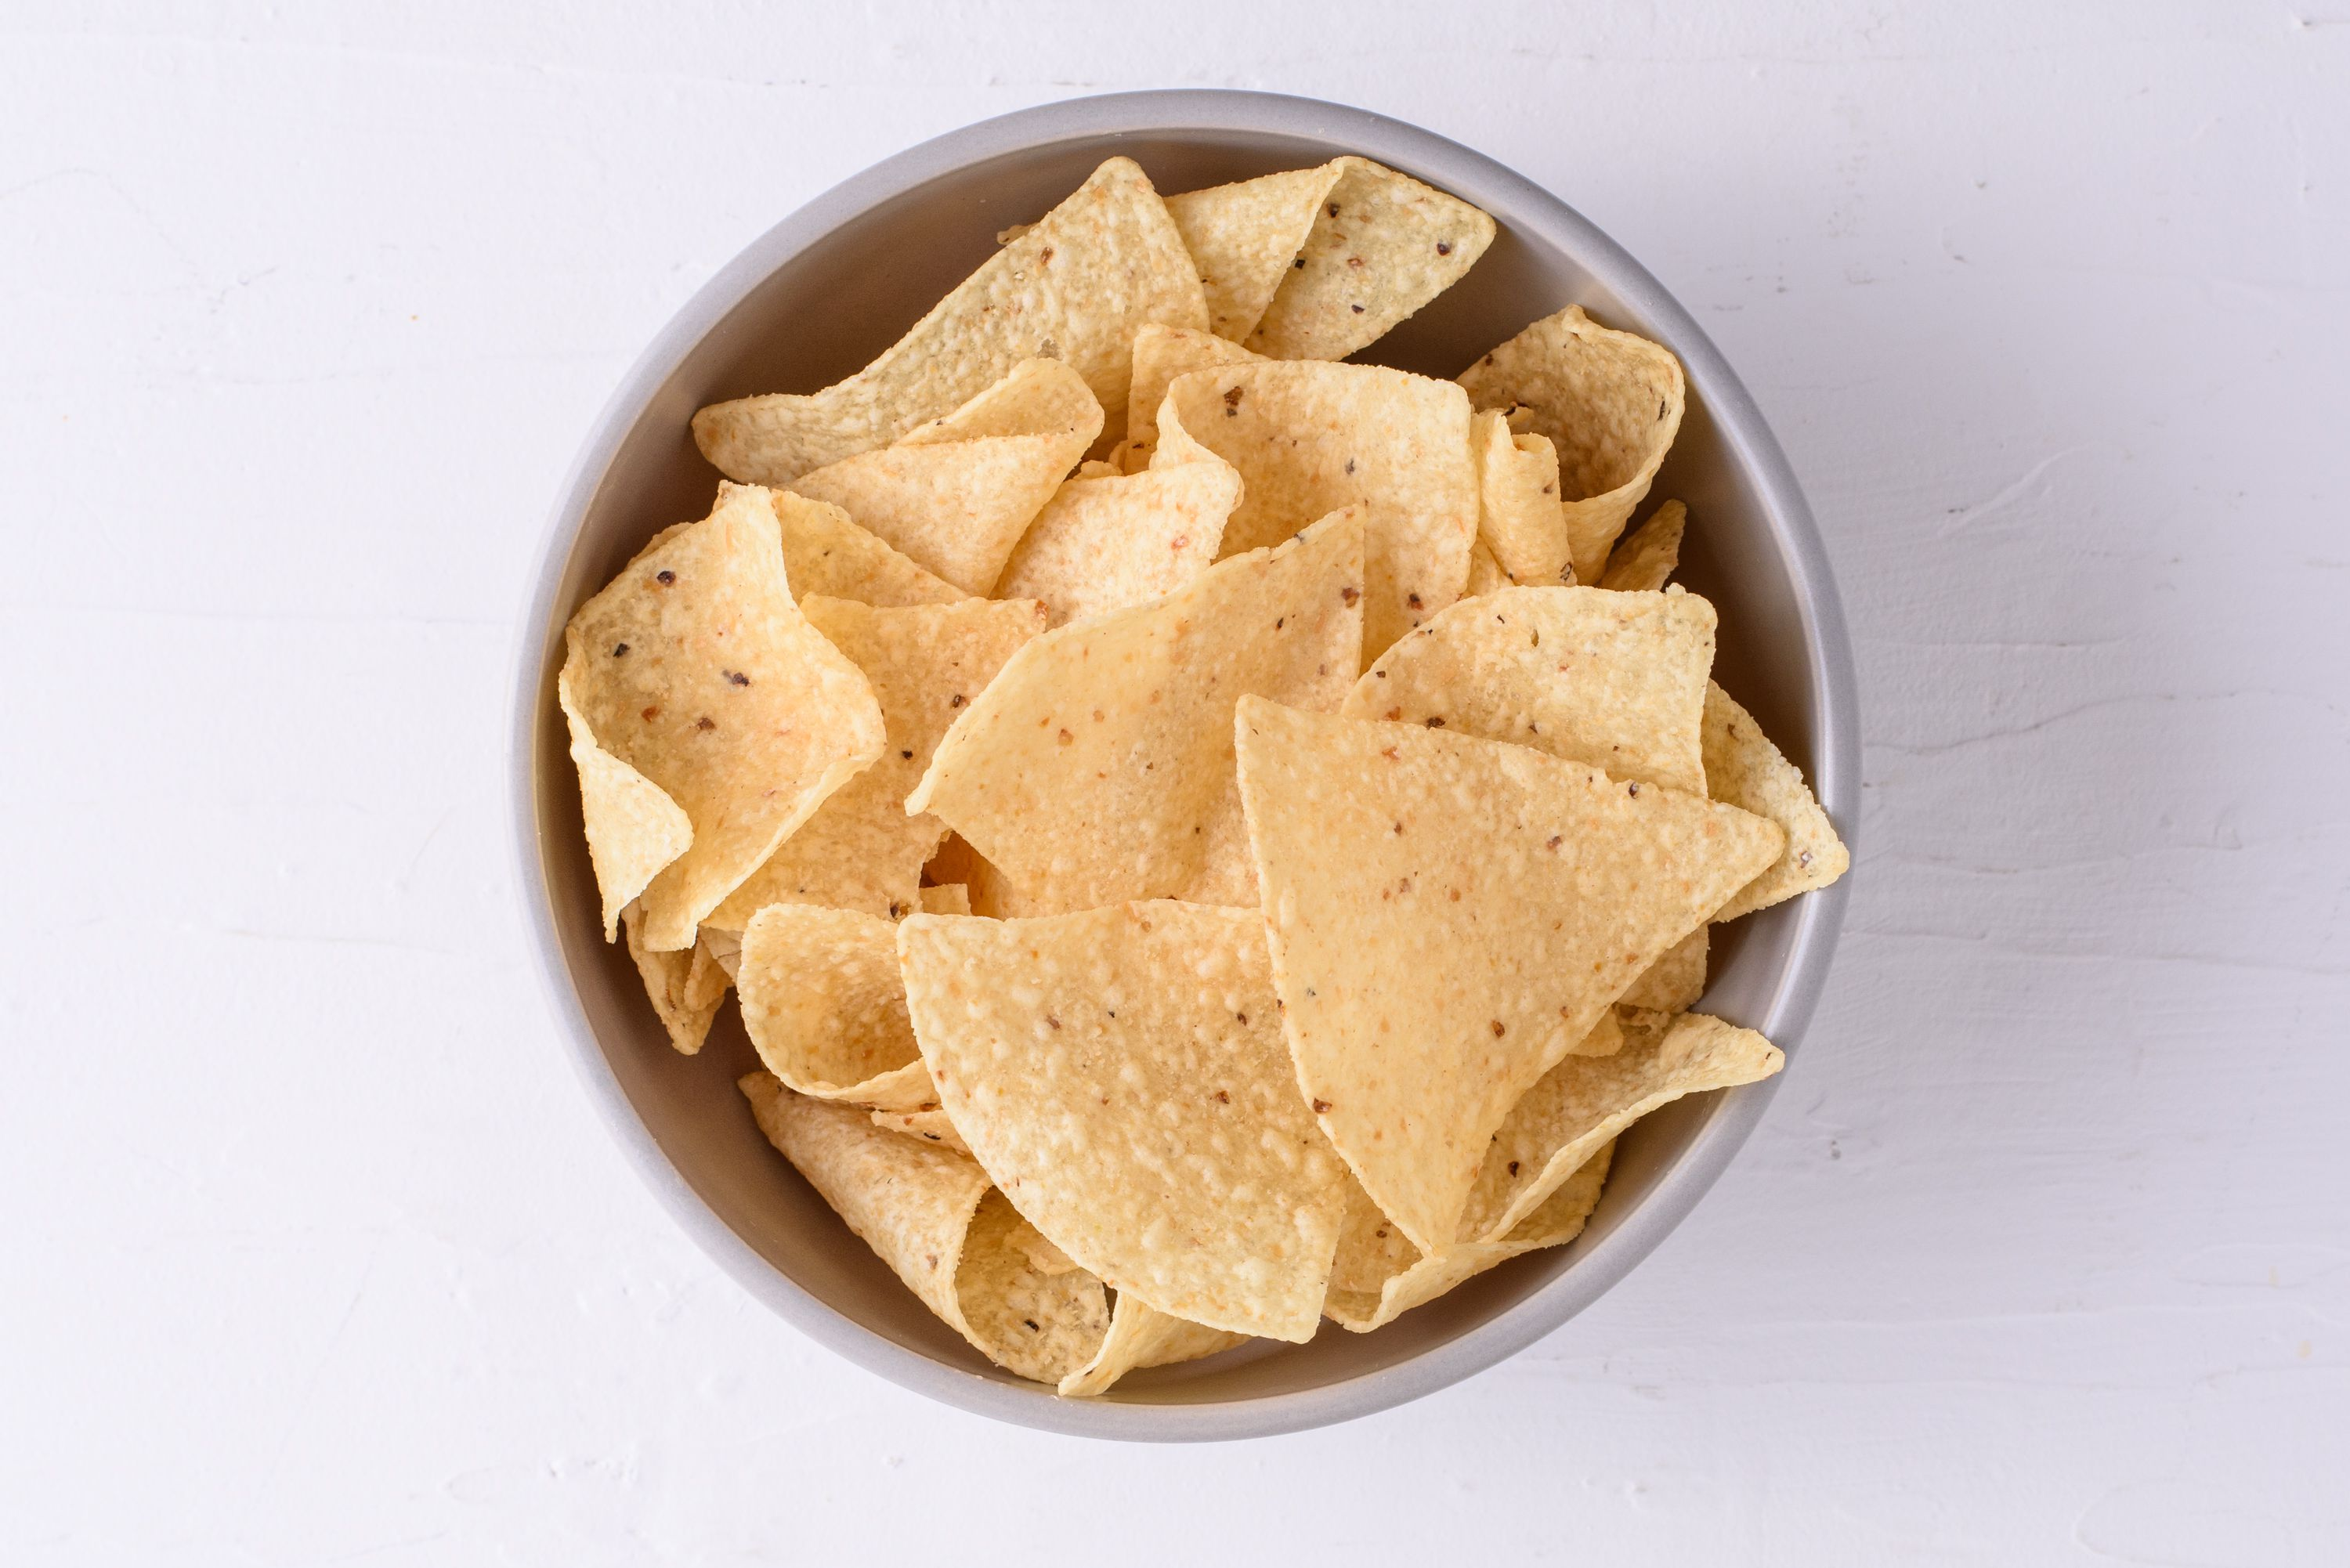 Best Brands Of Gluten Free Tortilla Chips